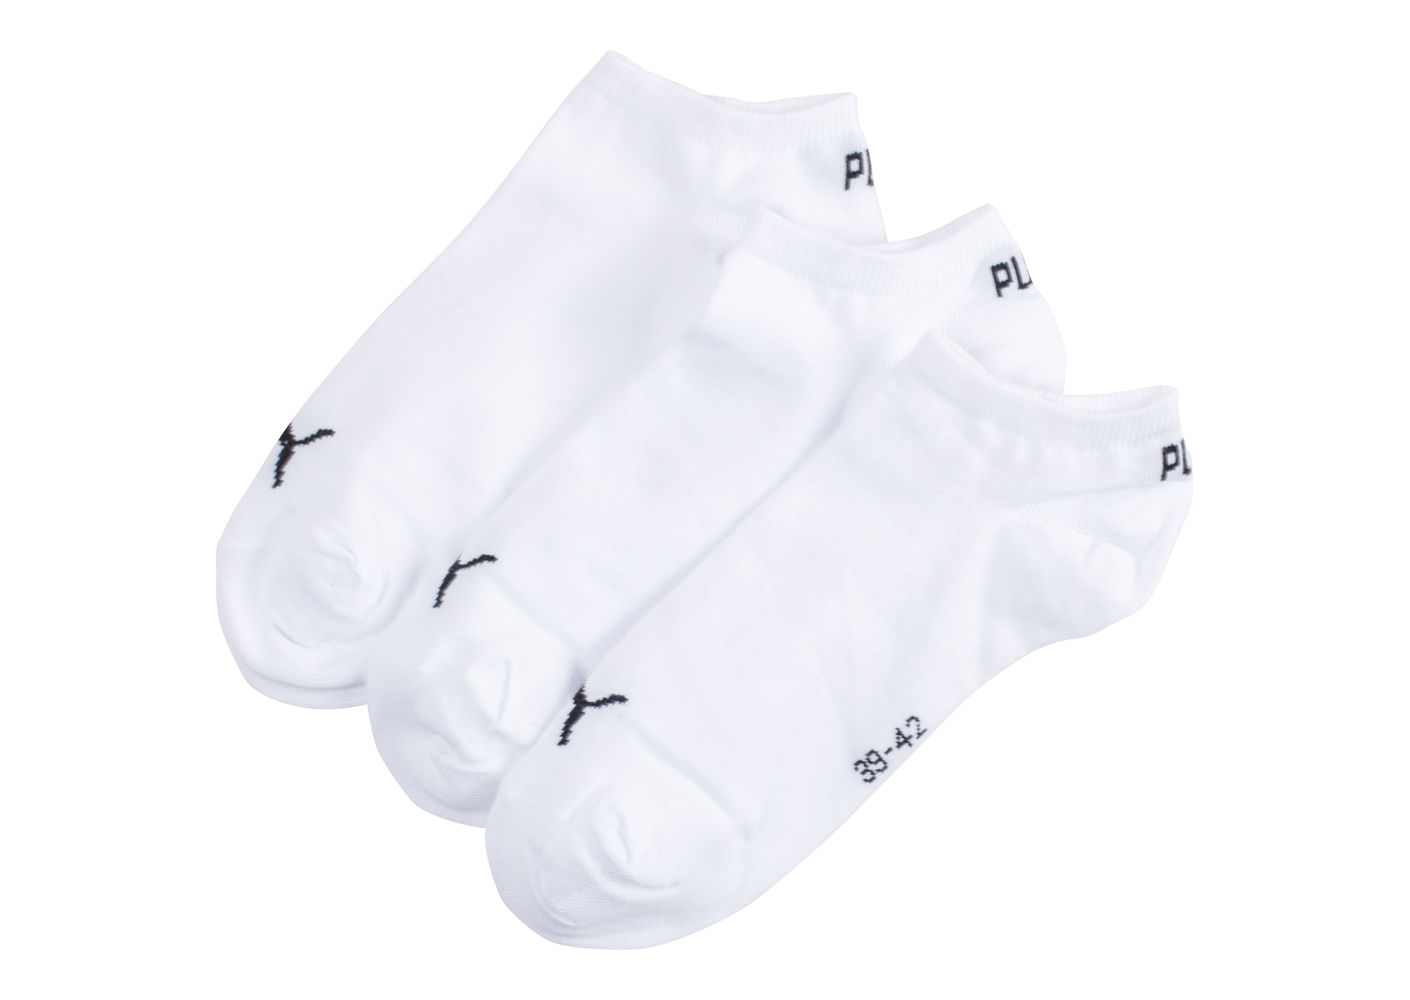 Puma Chaussettes Invisibles 3 Paires Blanches